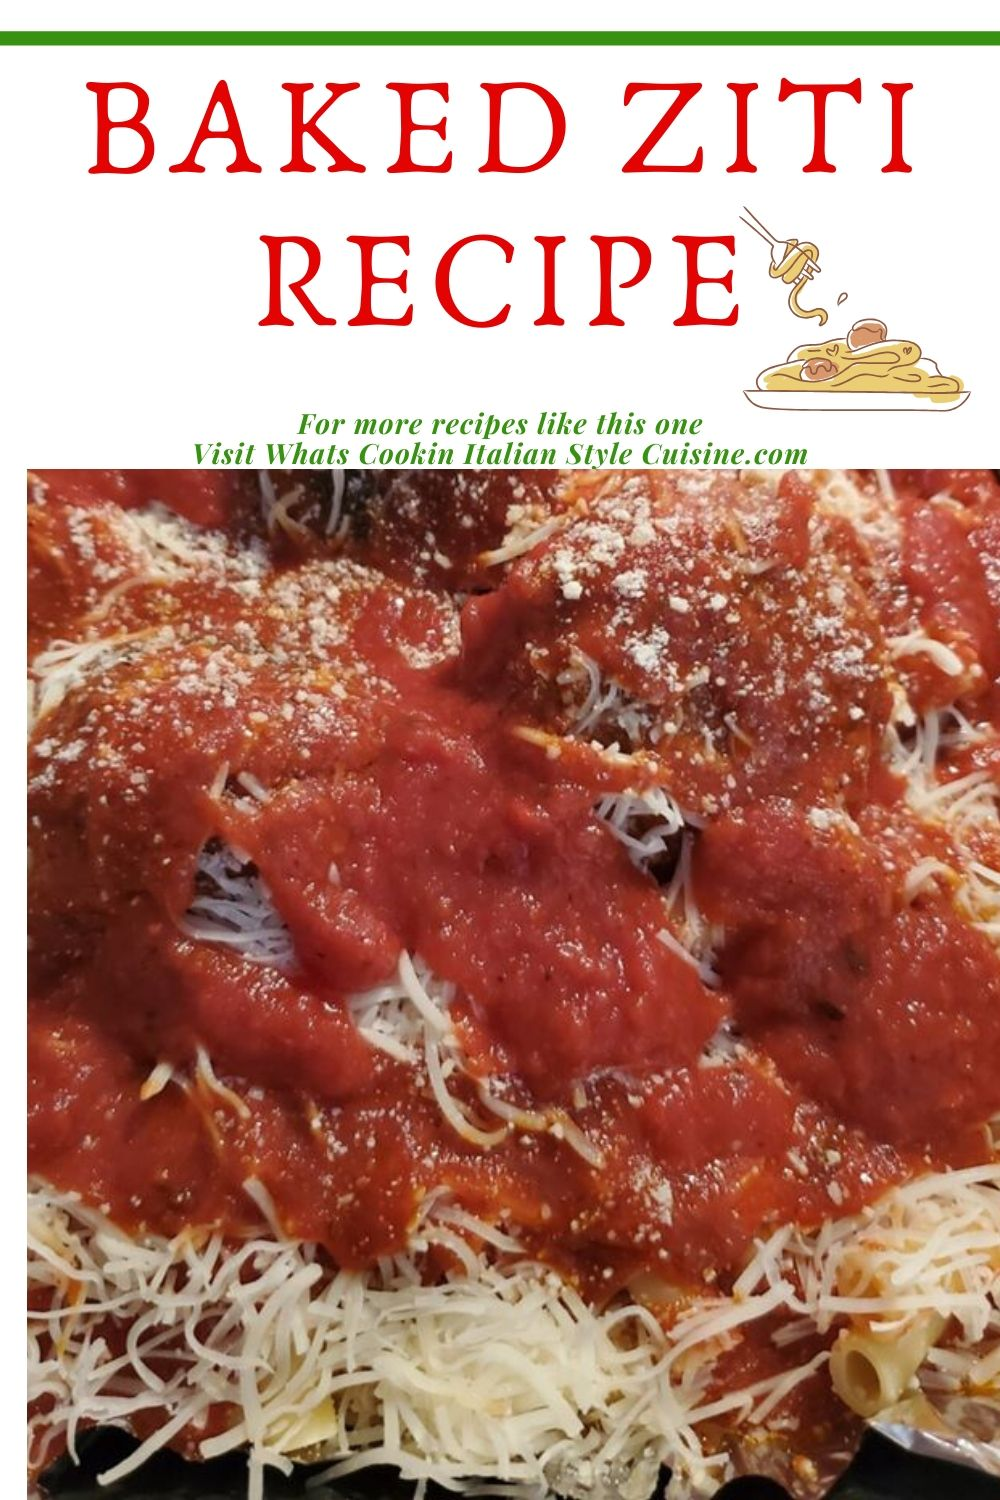 this is a pin for how to make Baked Ziti the Italian Classic Casserole baked pasta meal